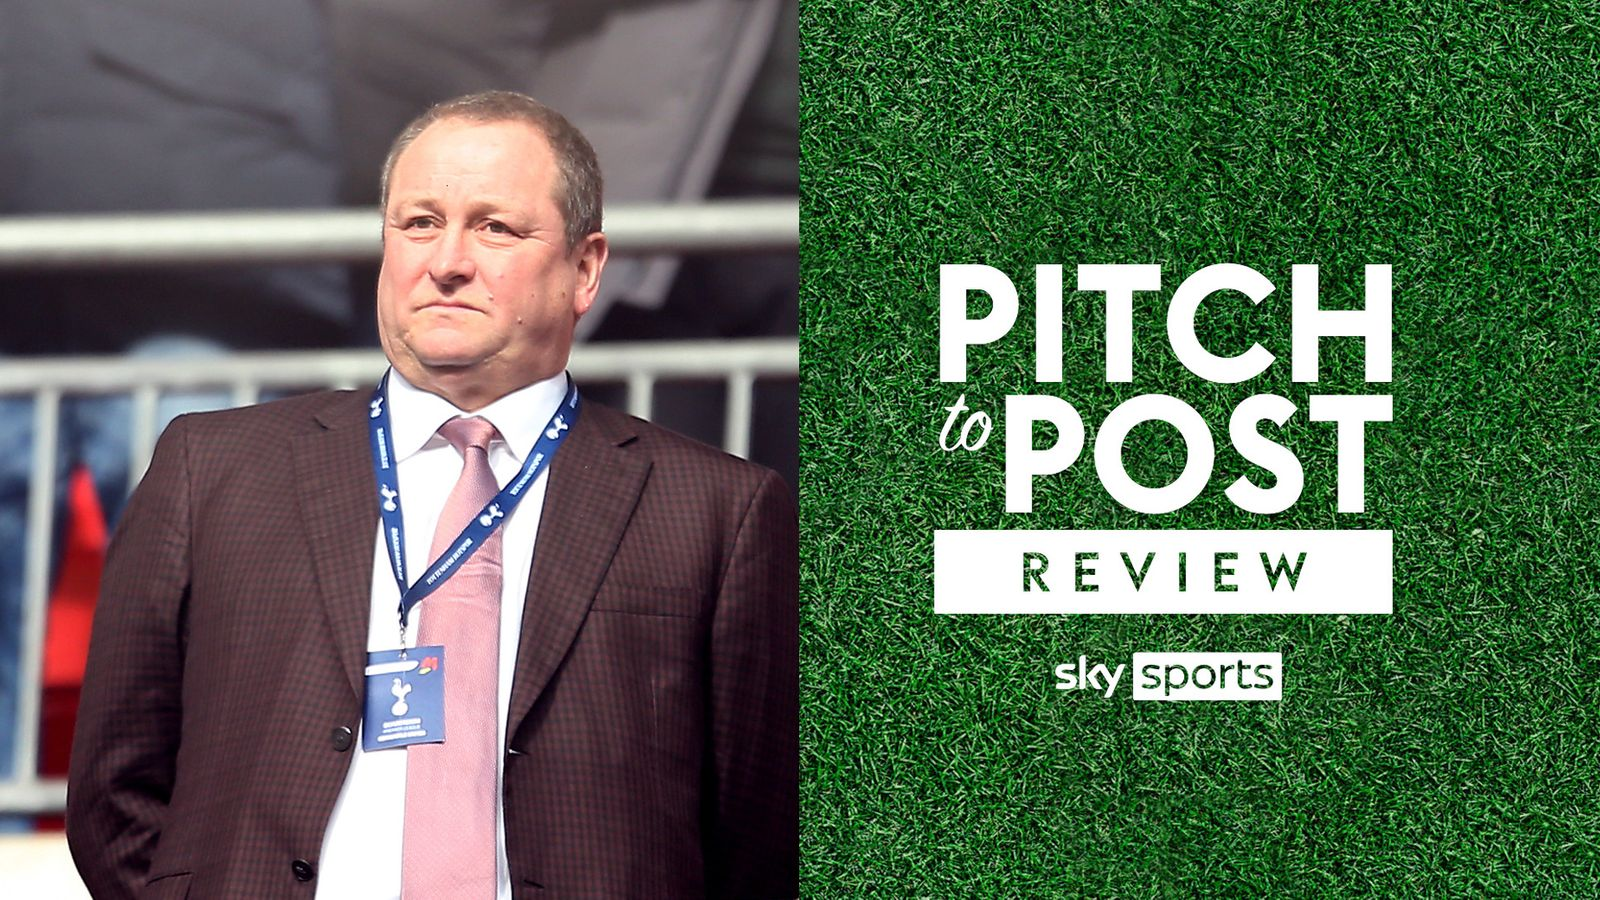 Regional Review: Newcastle takeover still